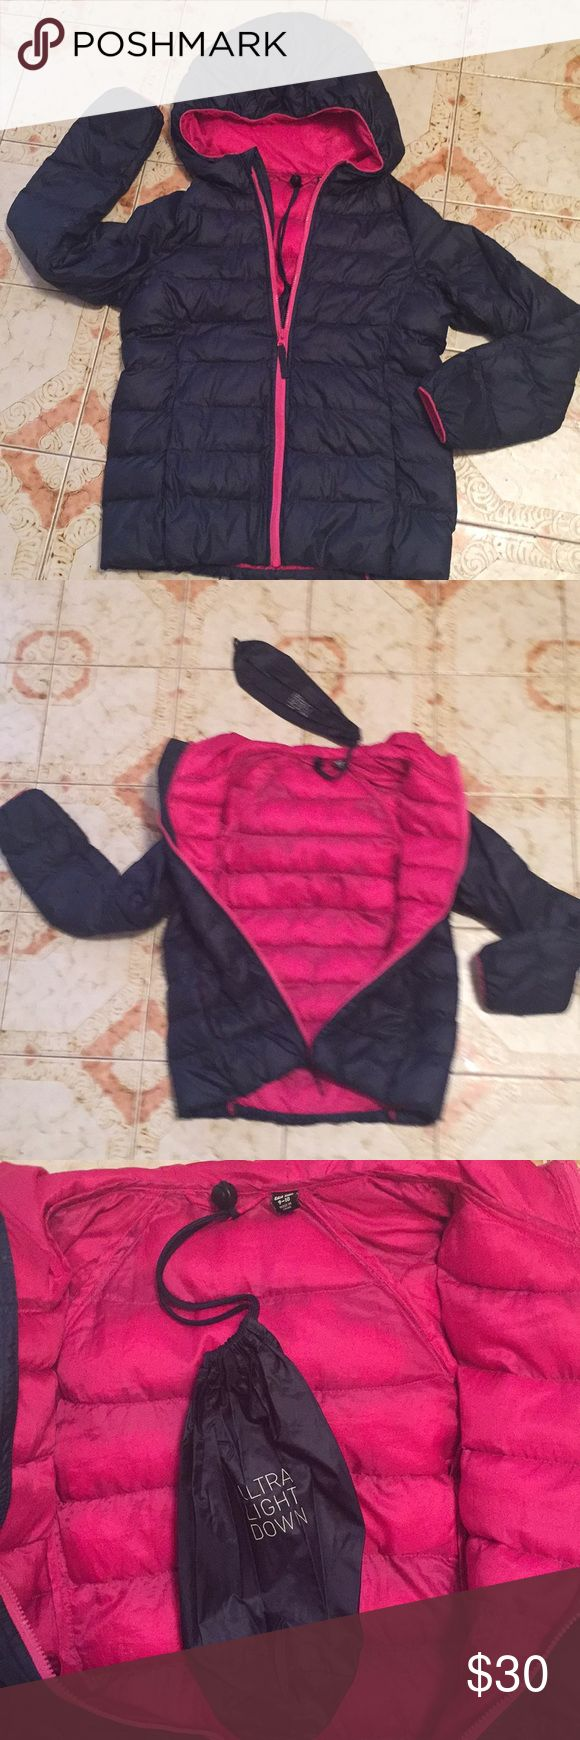 UNIULO girls hooded puffer jacket Lightly used Puffer